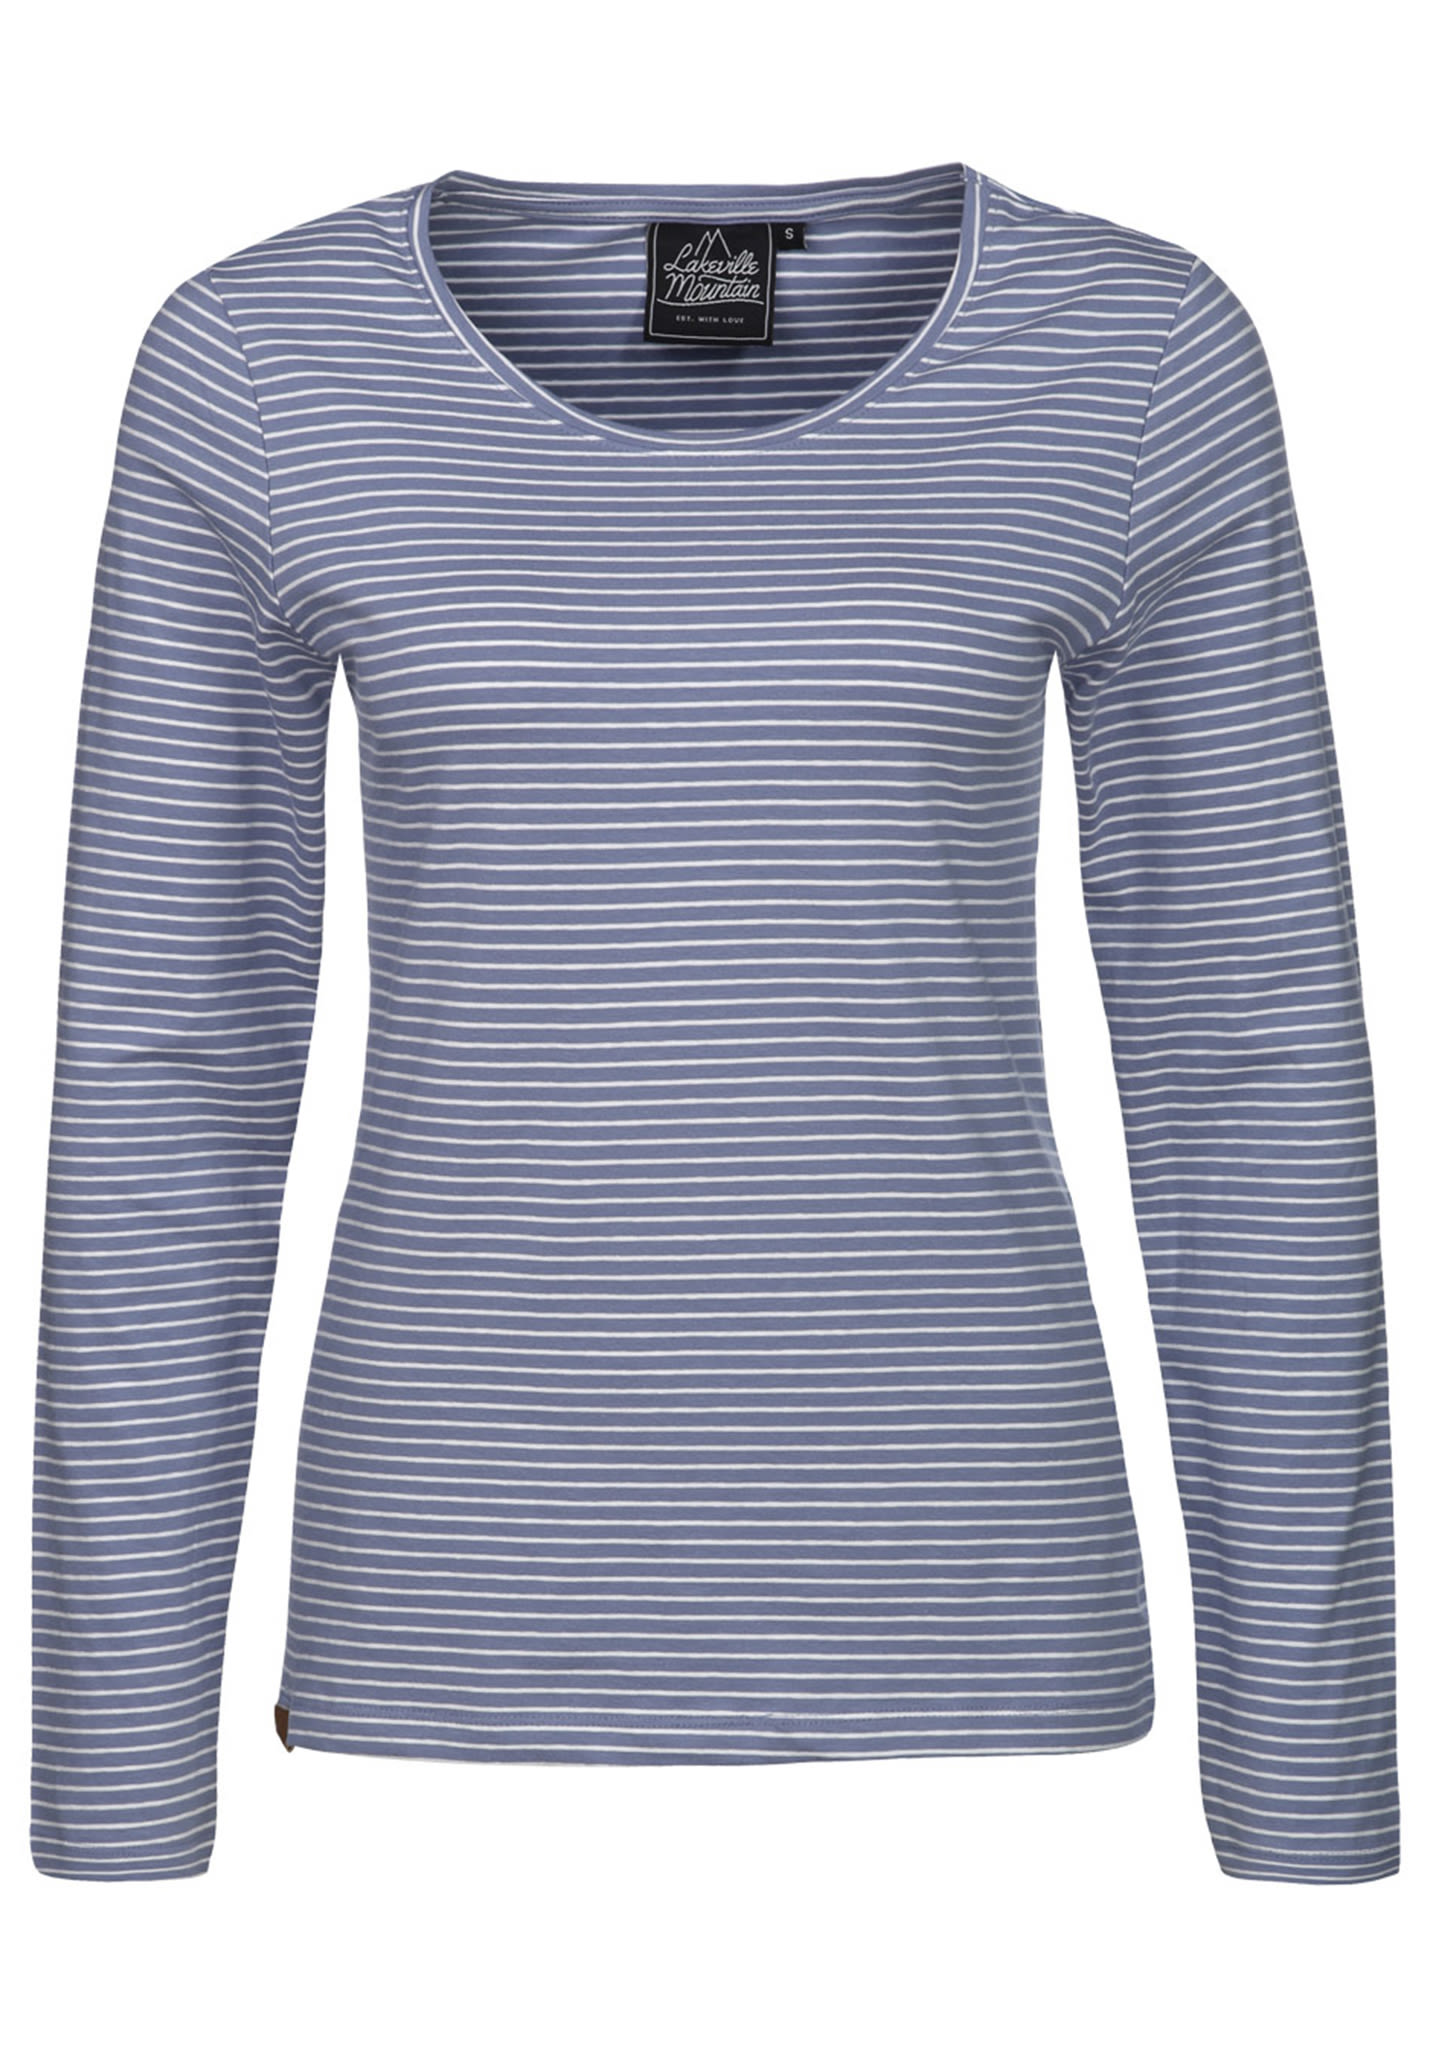 06450dbf82a Lakeville Mountain Tirba - Long-sleeved Shirt for Women - Blue - Planet  Sports